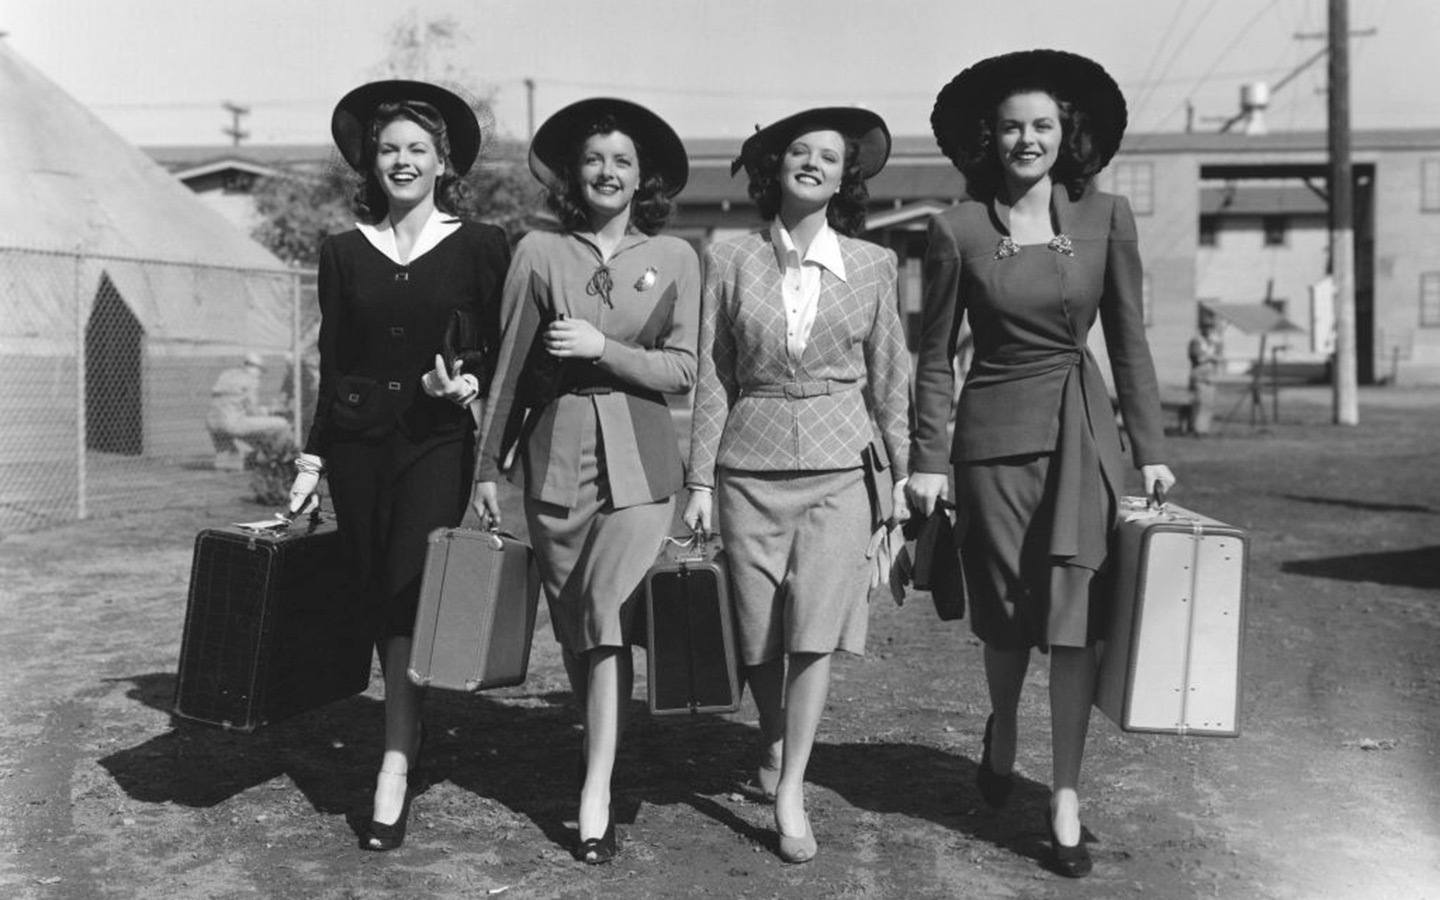 Four inspirational female travel pioneers